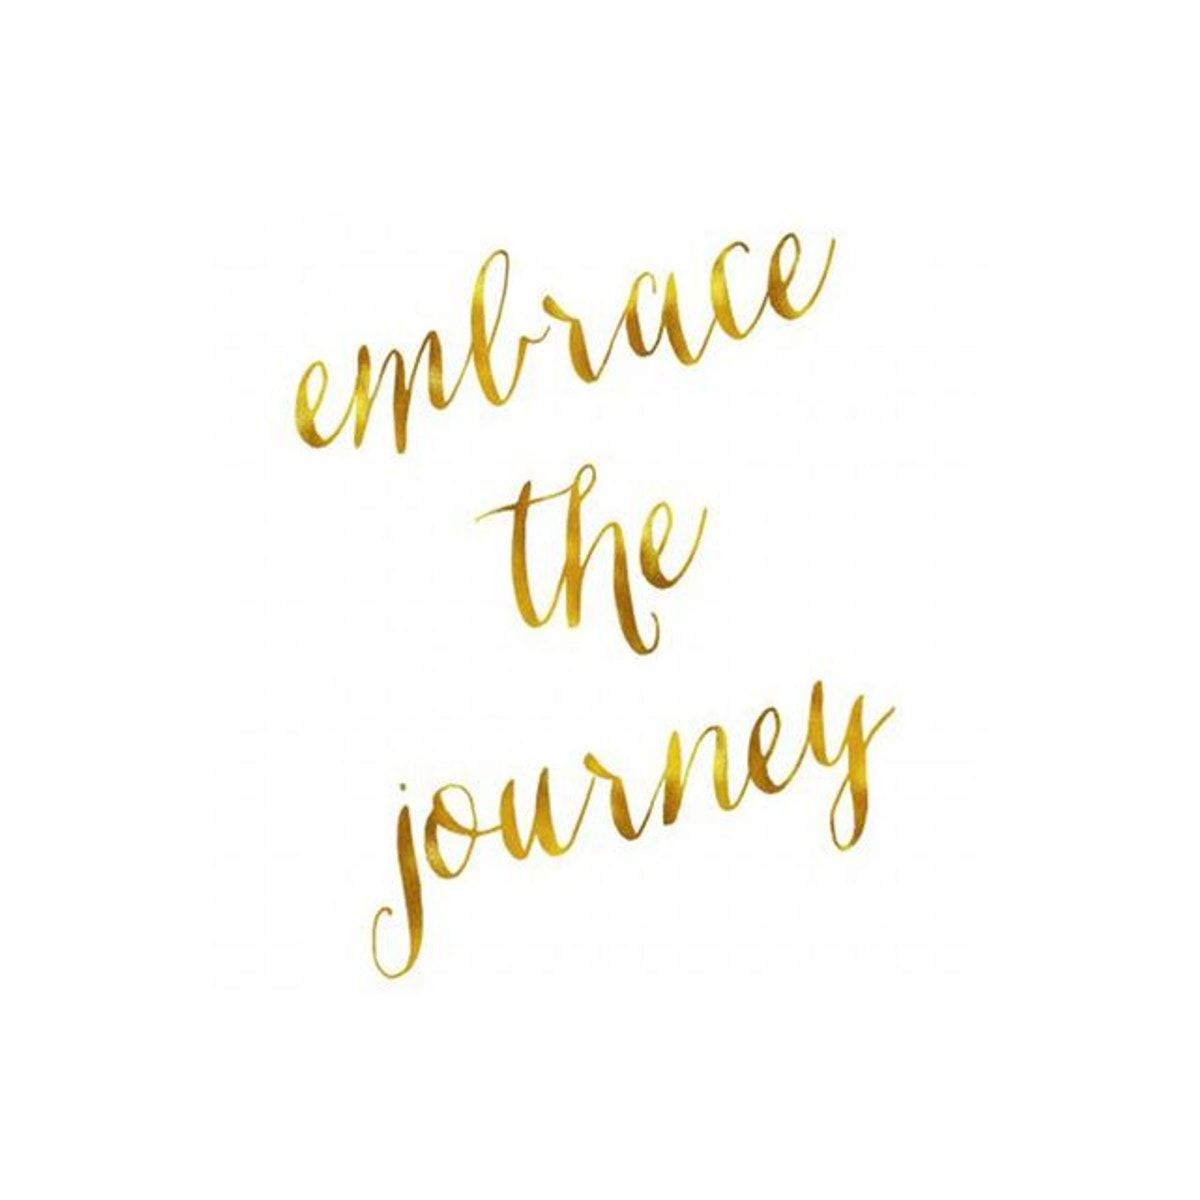 Tableau Quotes Embrace The Journey 60x60 Oceane Three Word Quotes Journey Quotes Tattoo Quotes About Life